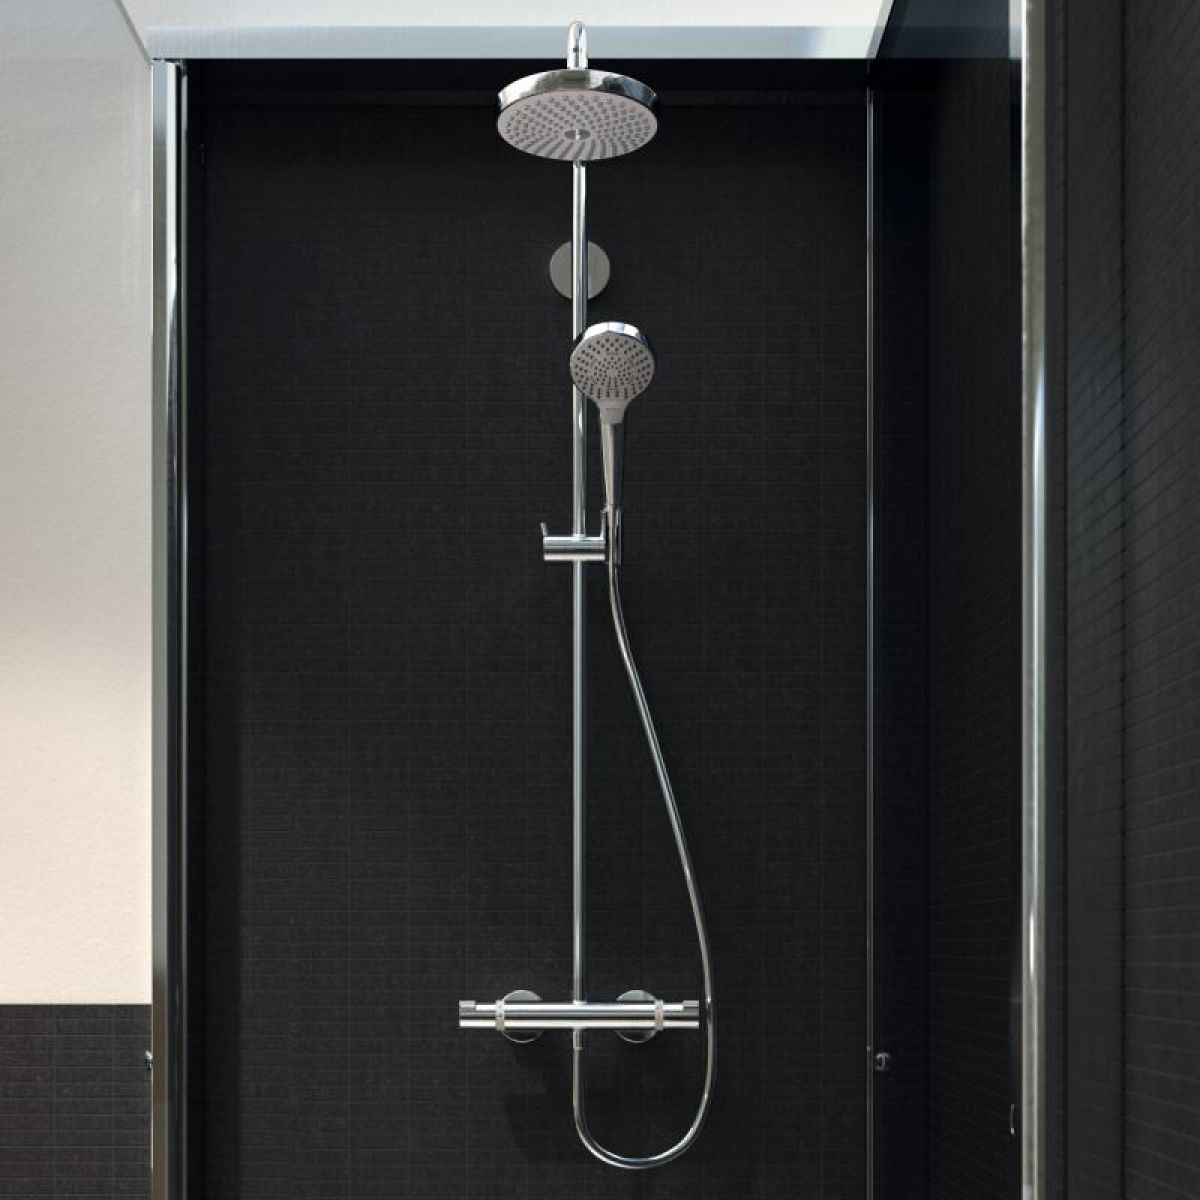 Hansgrohe Raindance Select S 240 1jet Showerpipe : UK Bathrooms